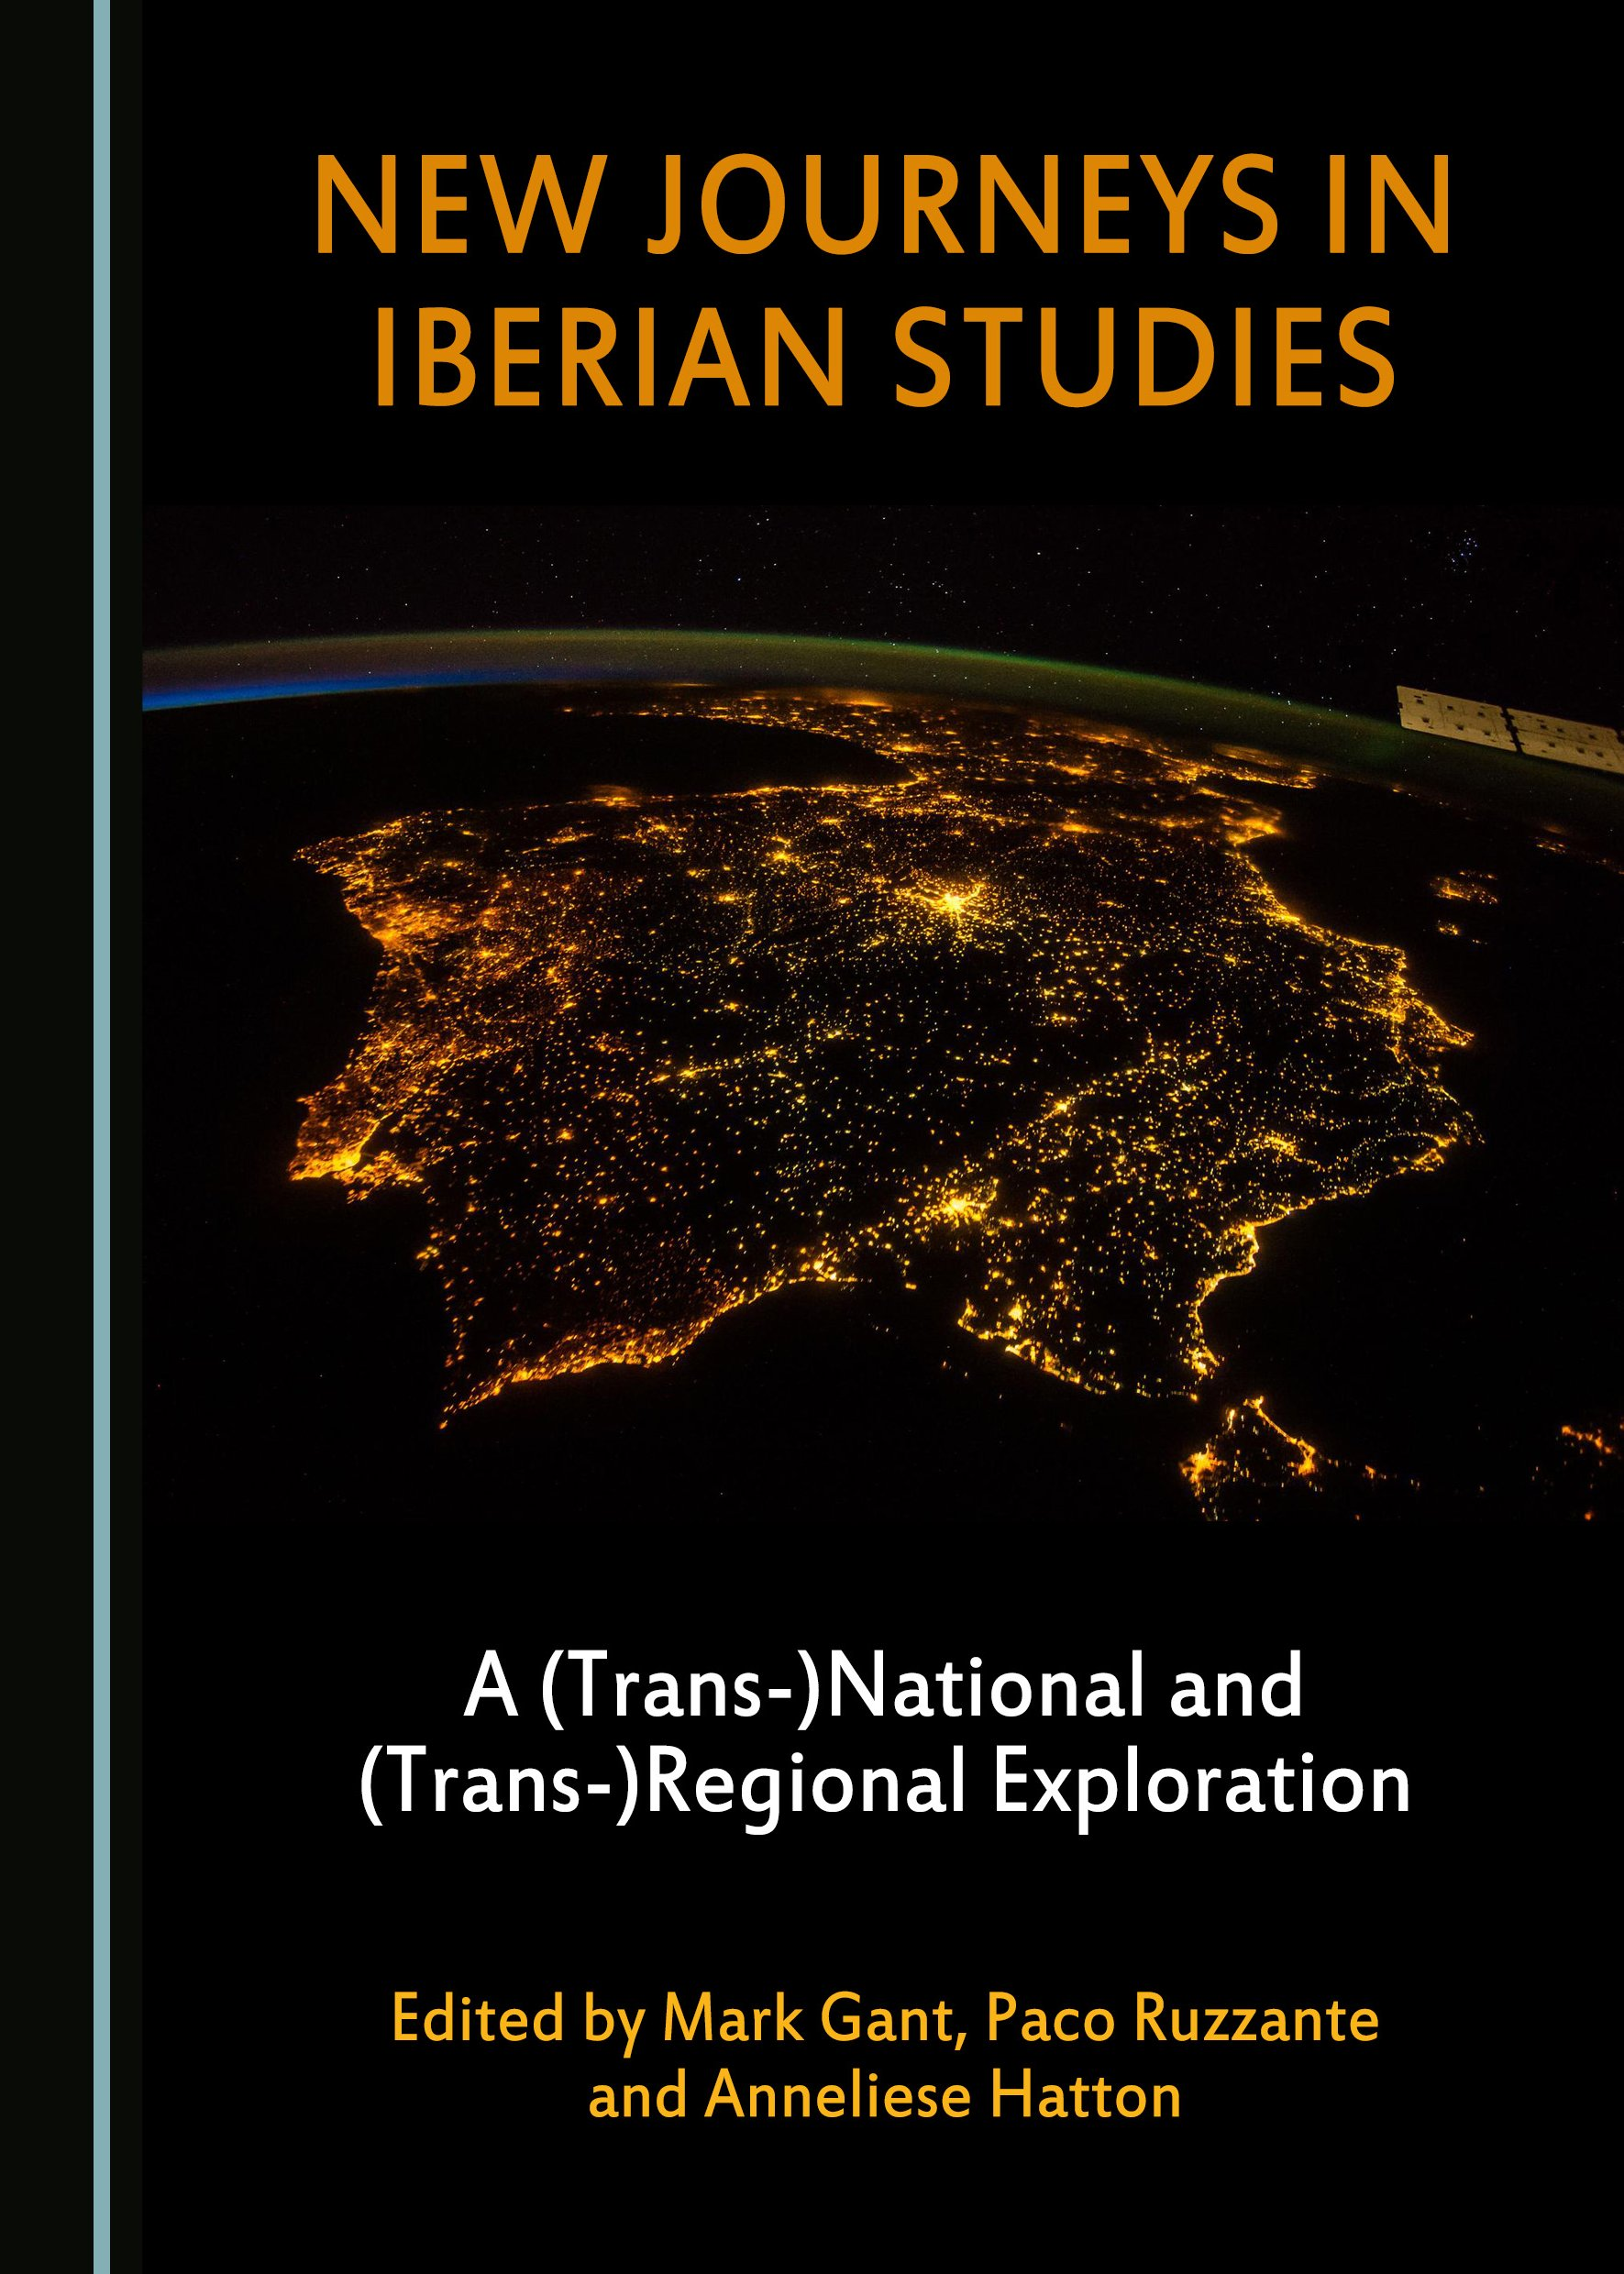 New Journeys in Iberian Studies: A (Trans-)National and (Trans-)Regional Exploration